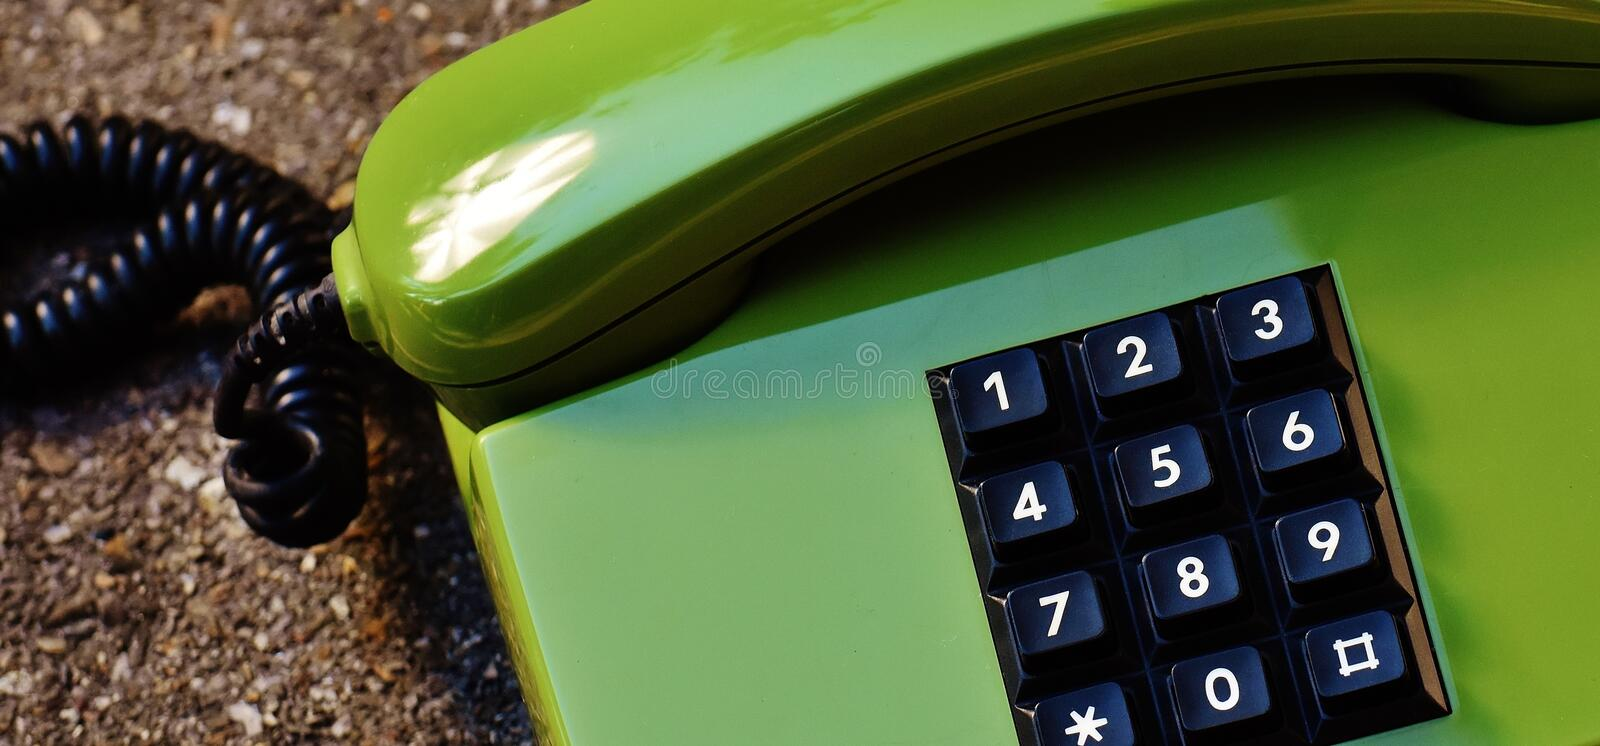 Green Black Telephone stock image